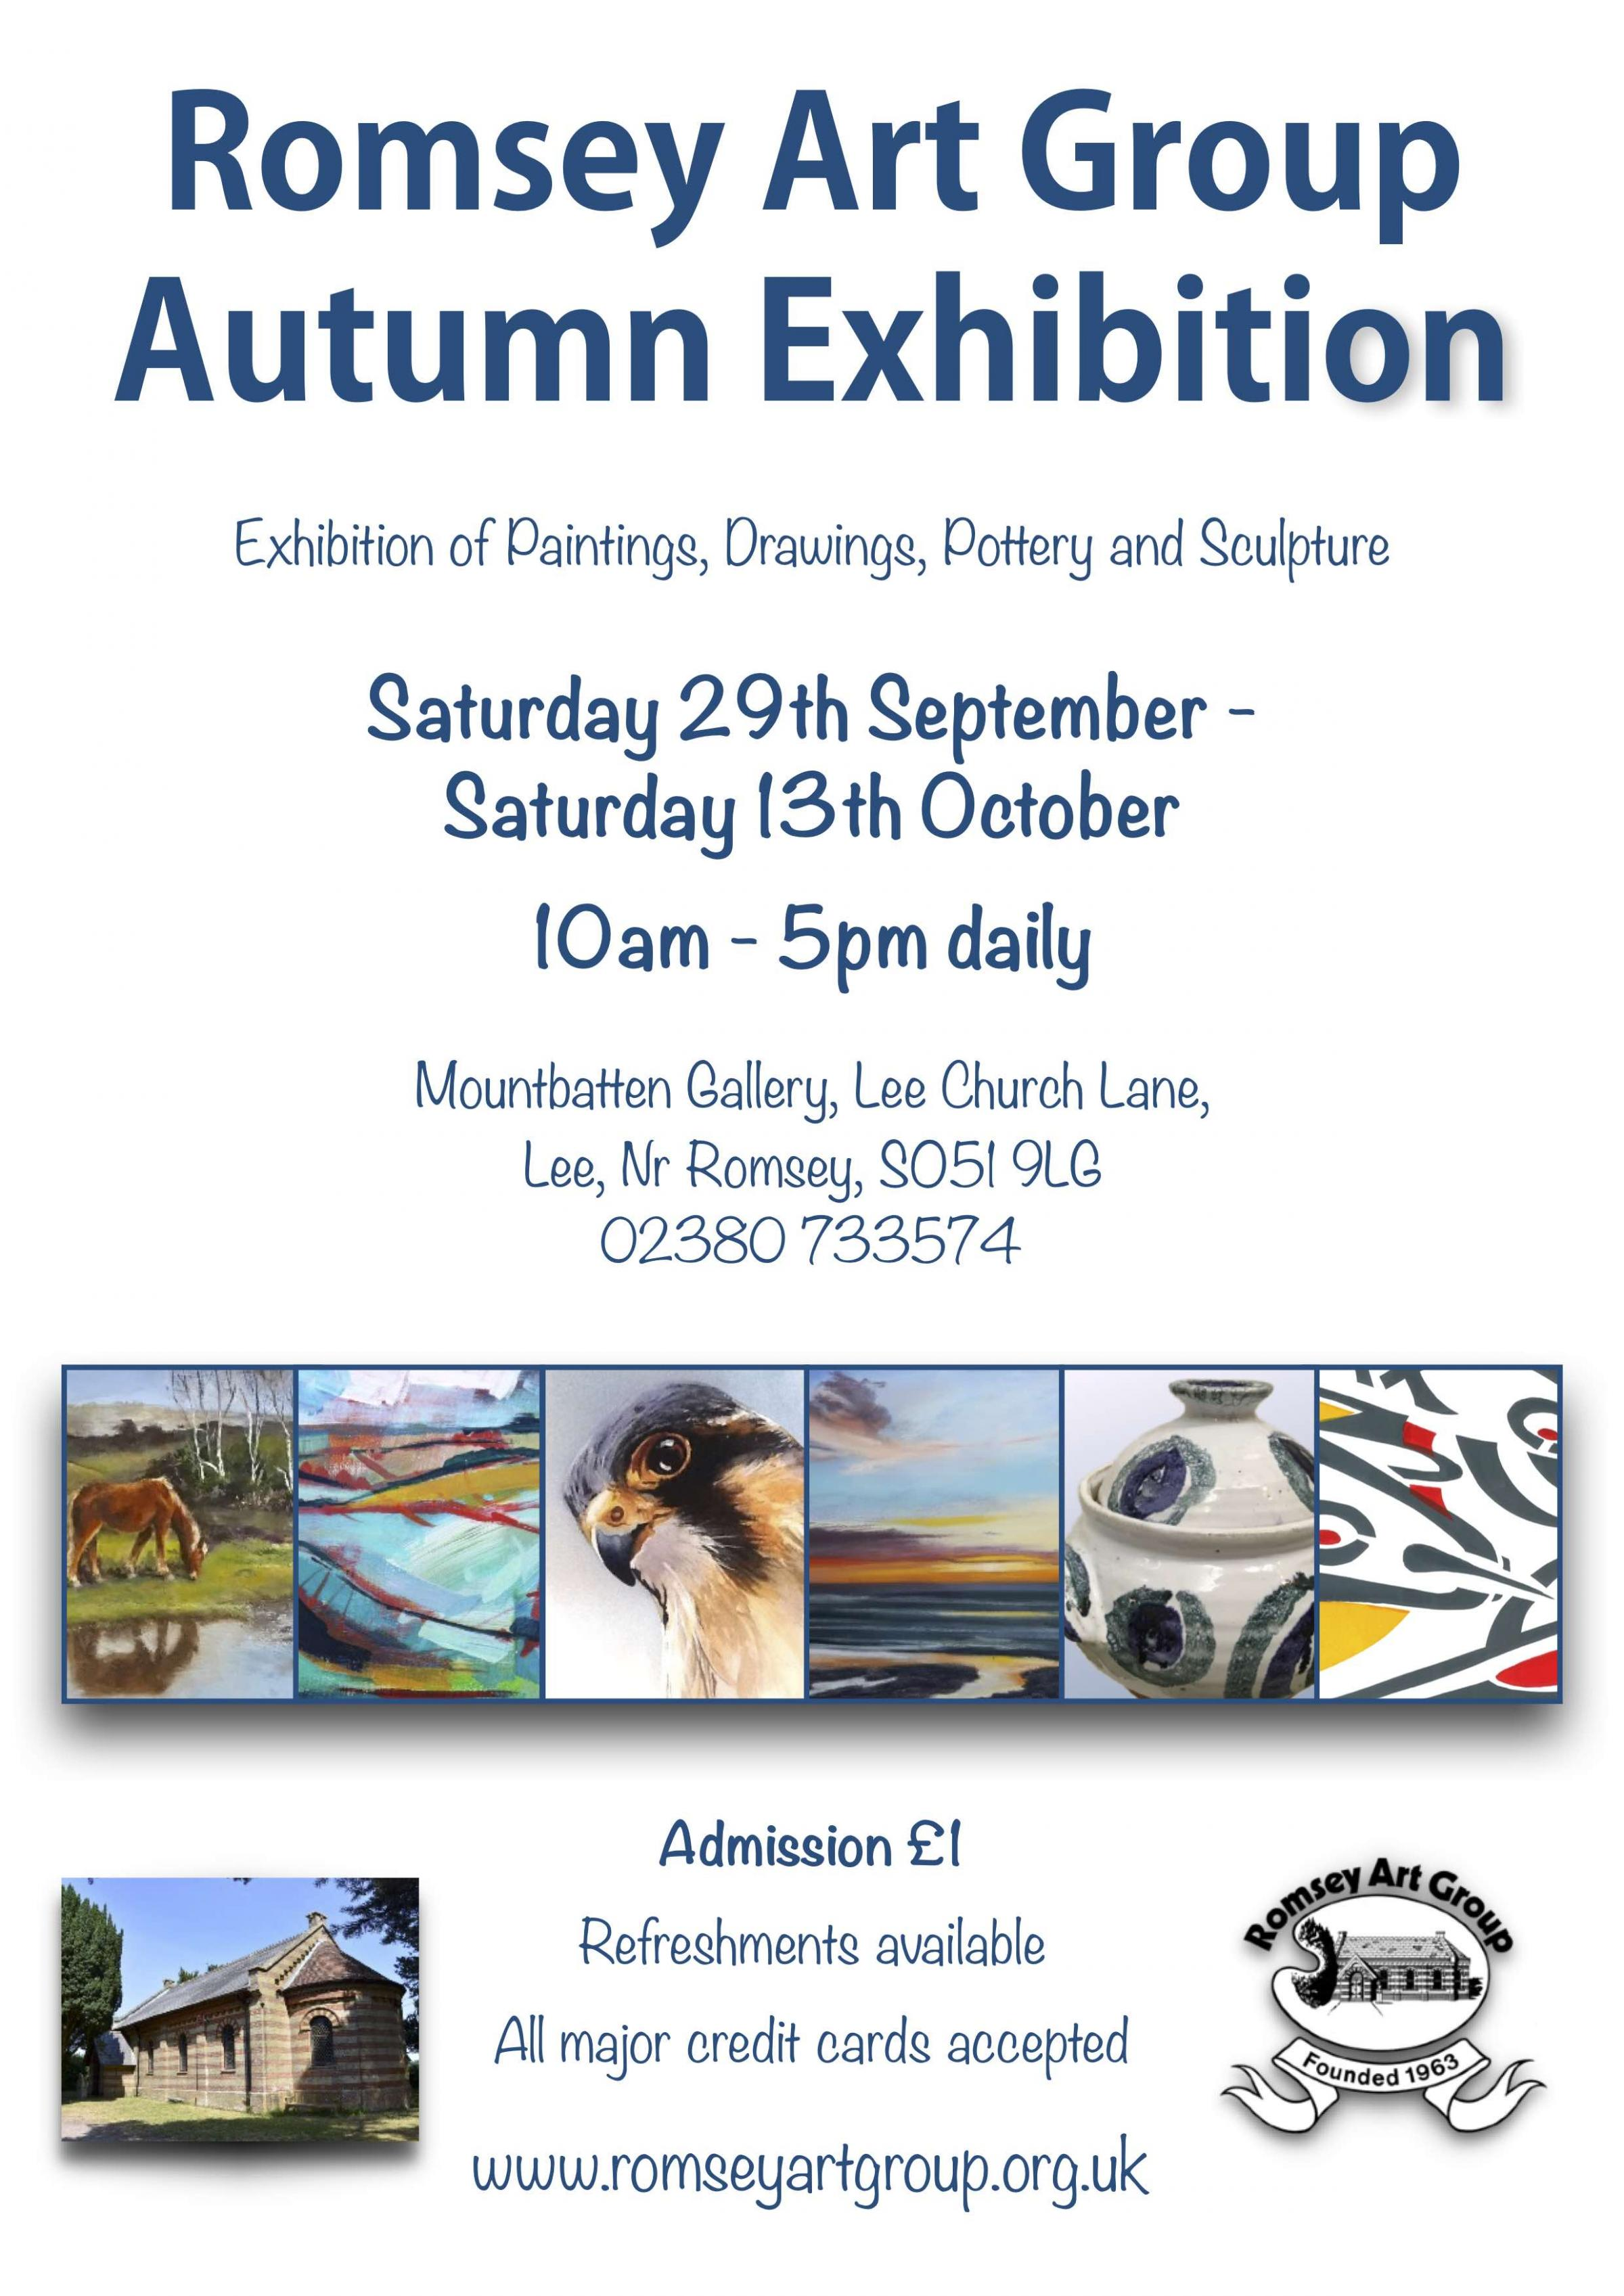 Romsey Art Group Autumn Exhibition